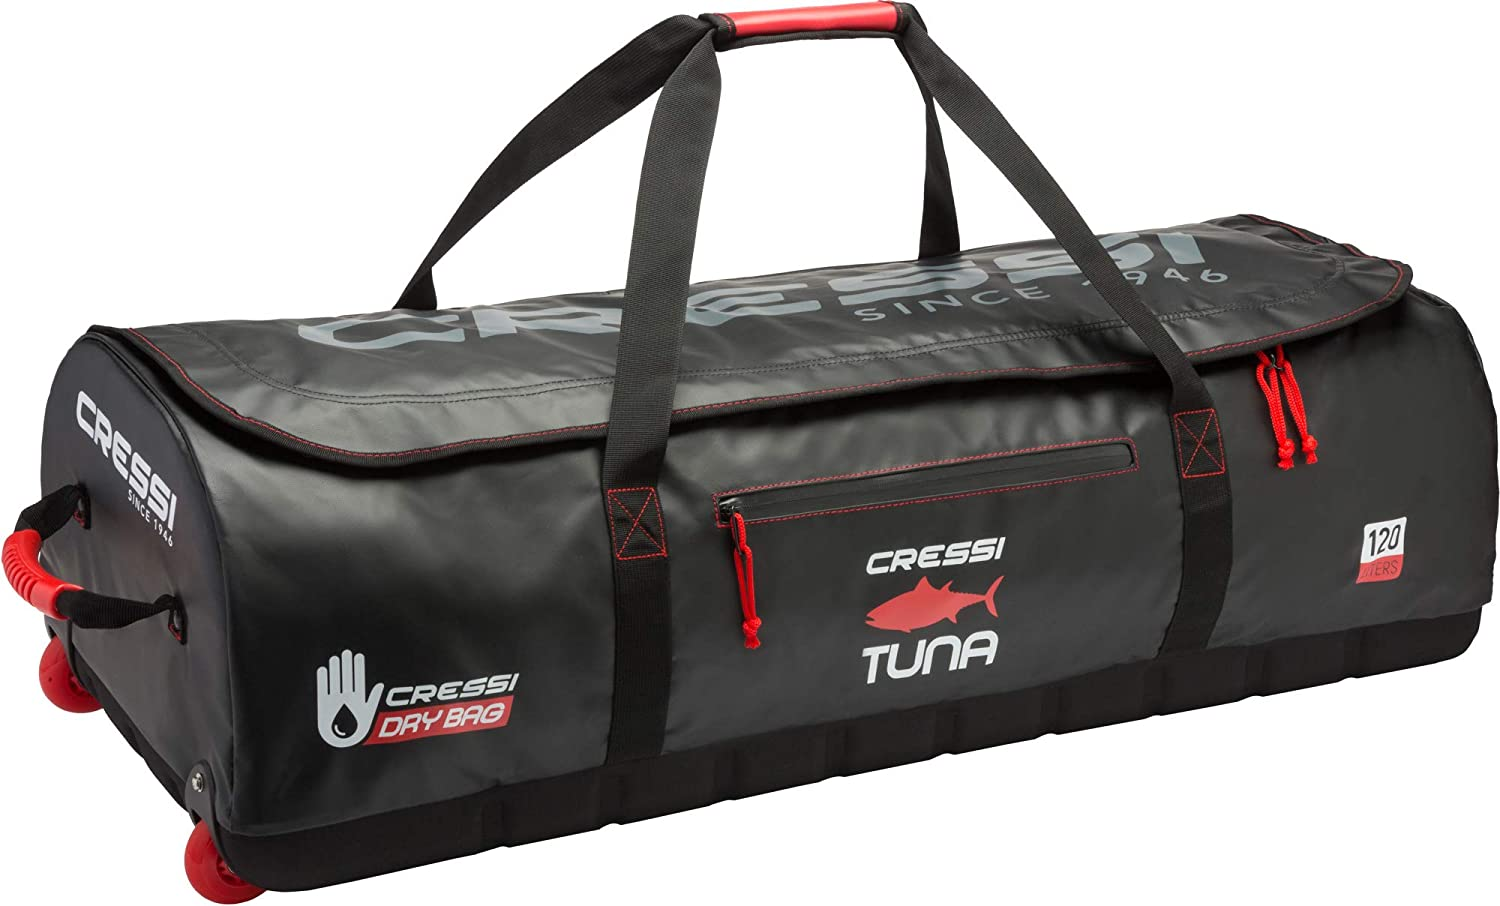 Cressi High-Capacity Wheeled Bag | Water Resistant | 120 Liters Capacity | Ideal for Scuba Diving and Water Sports Equipment | Tuna: Designed in Italy